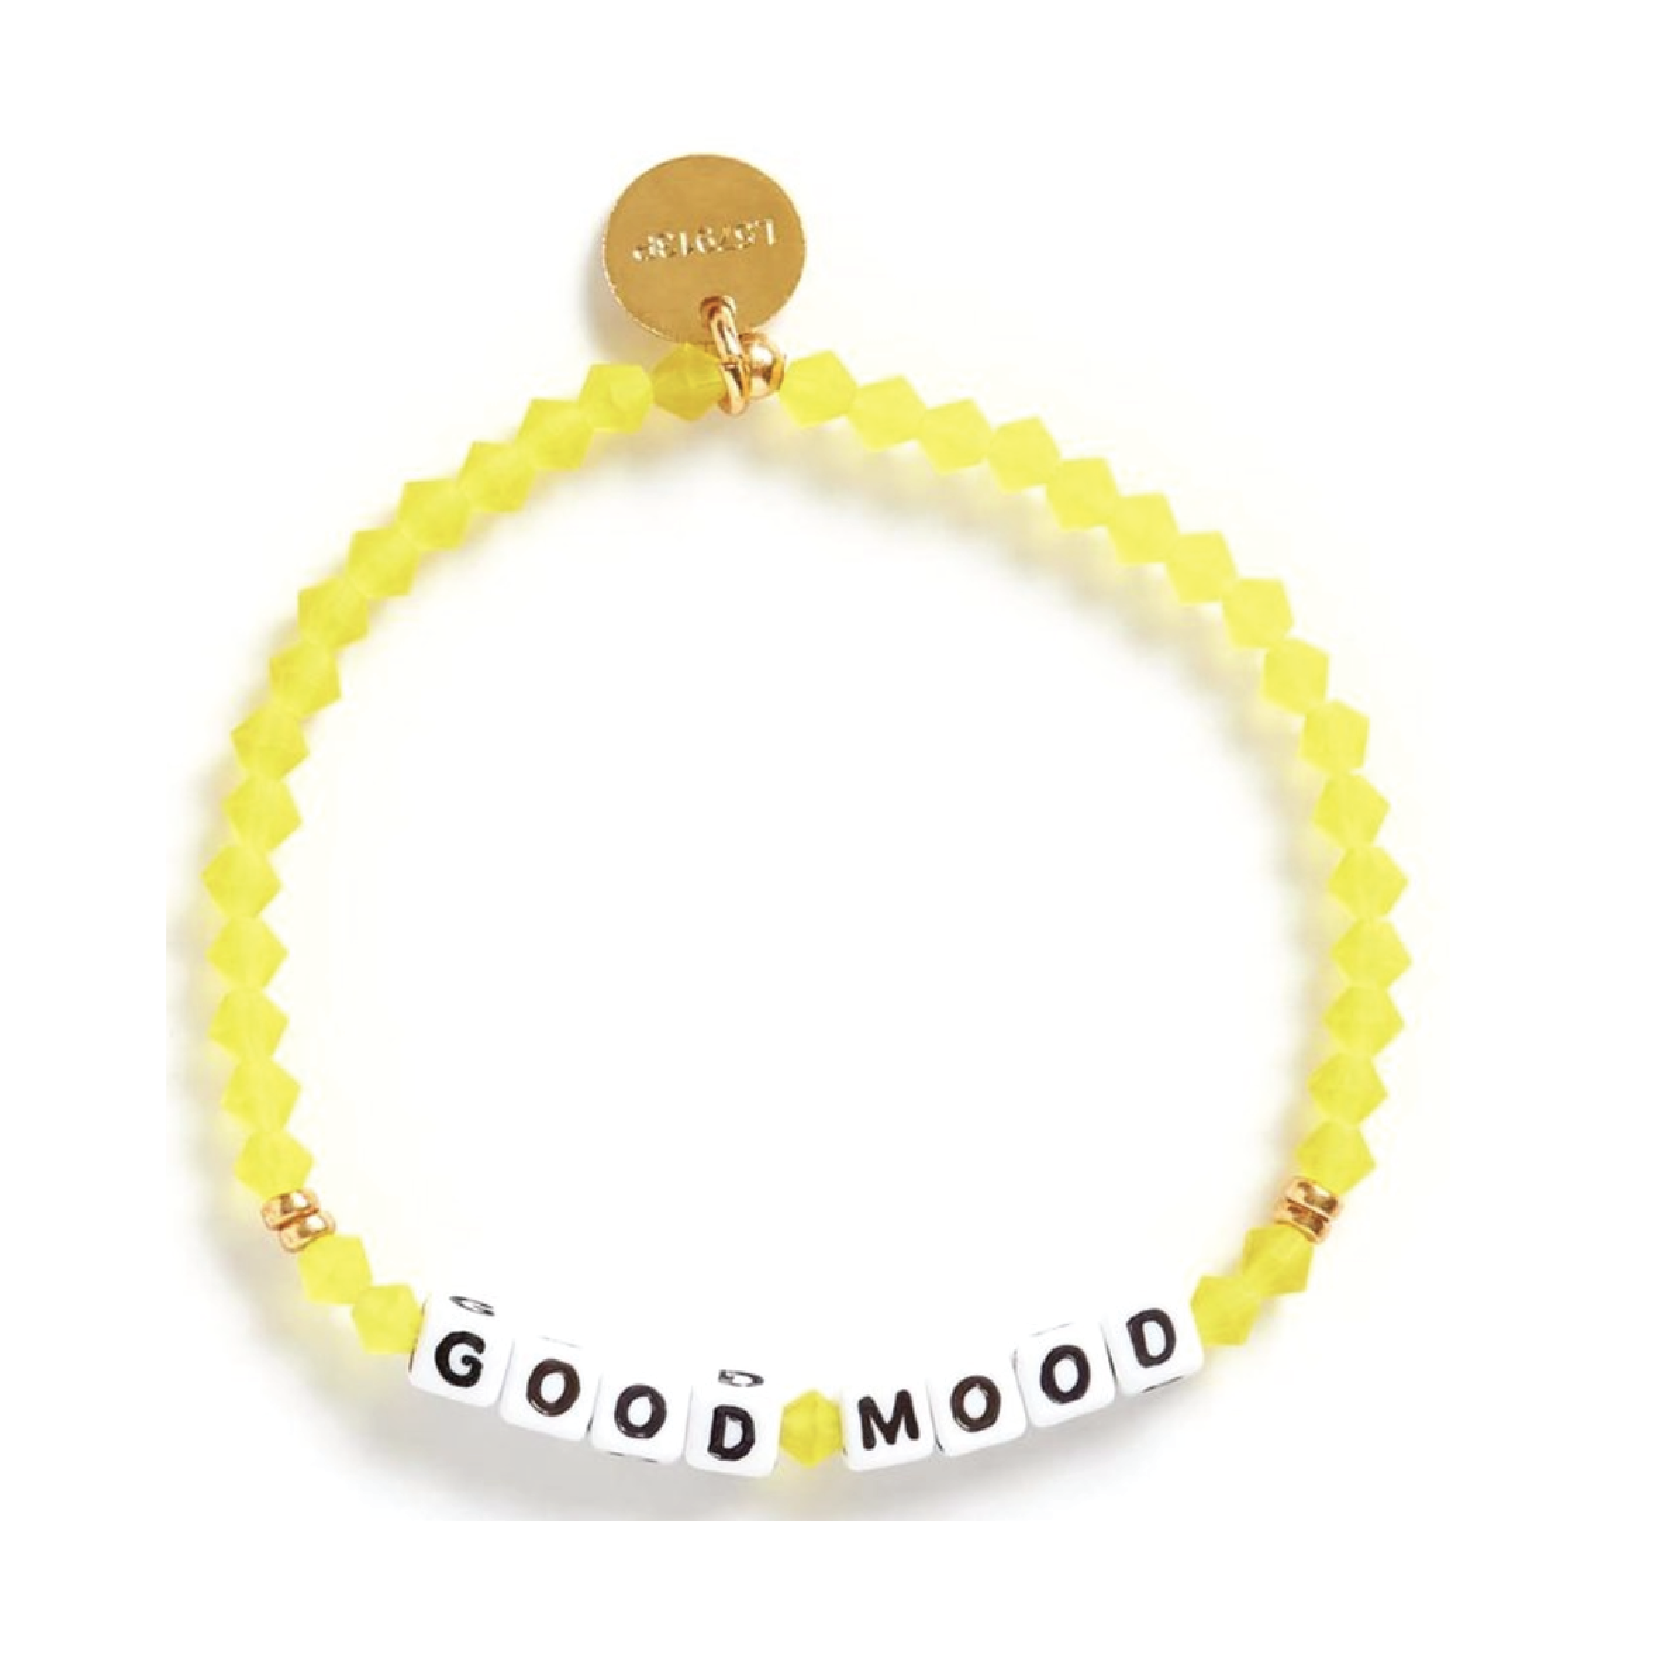 Ban.do x The Little Words Project Good Mood Bracelet - $18 on Ban.doAnother gift that promotes happiness and fun, this bracelet hopes to inspire adventure, enthusiasm, and optimism.